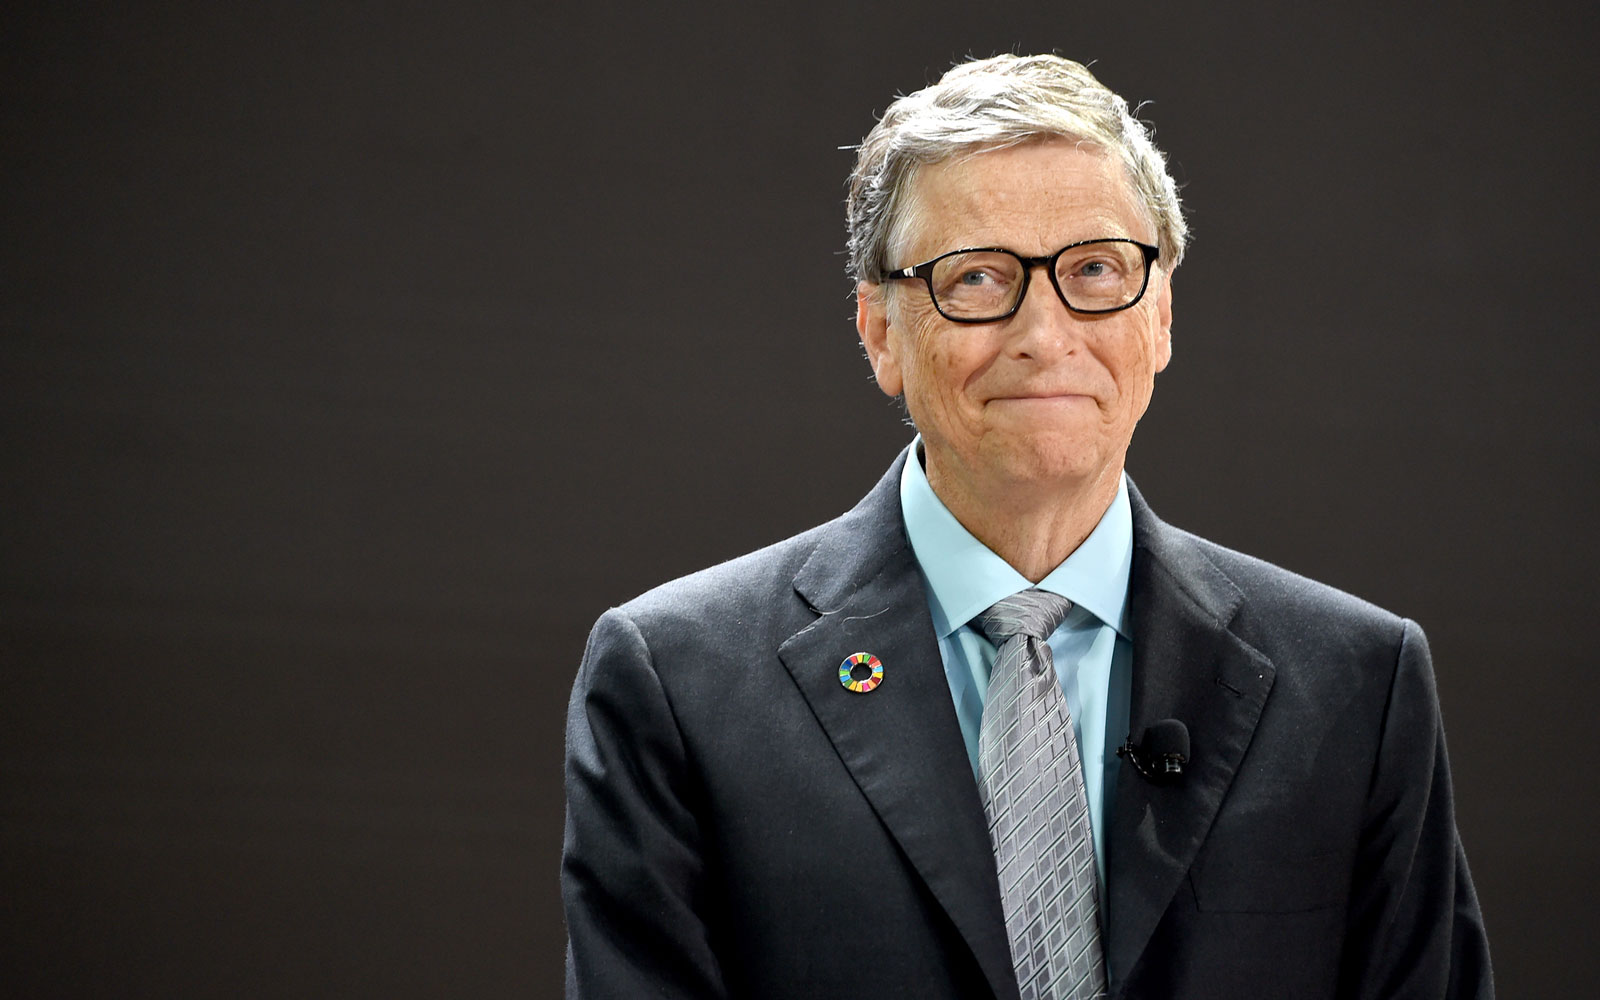 Bill Gates Wants to Build a Smart City in Arizona